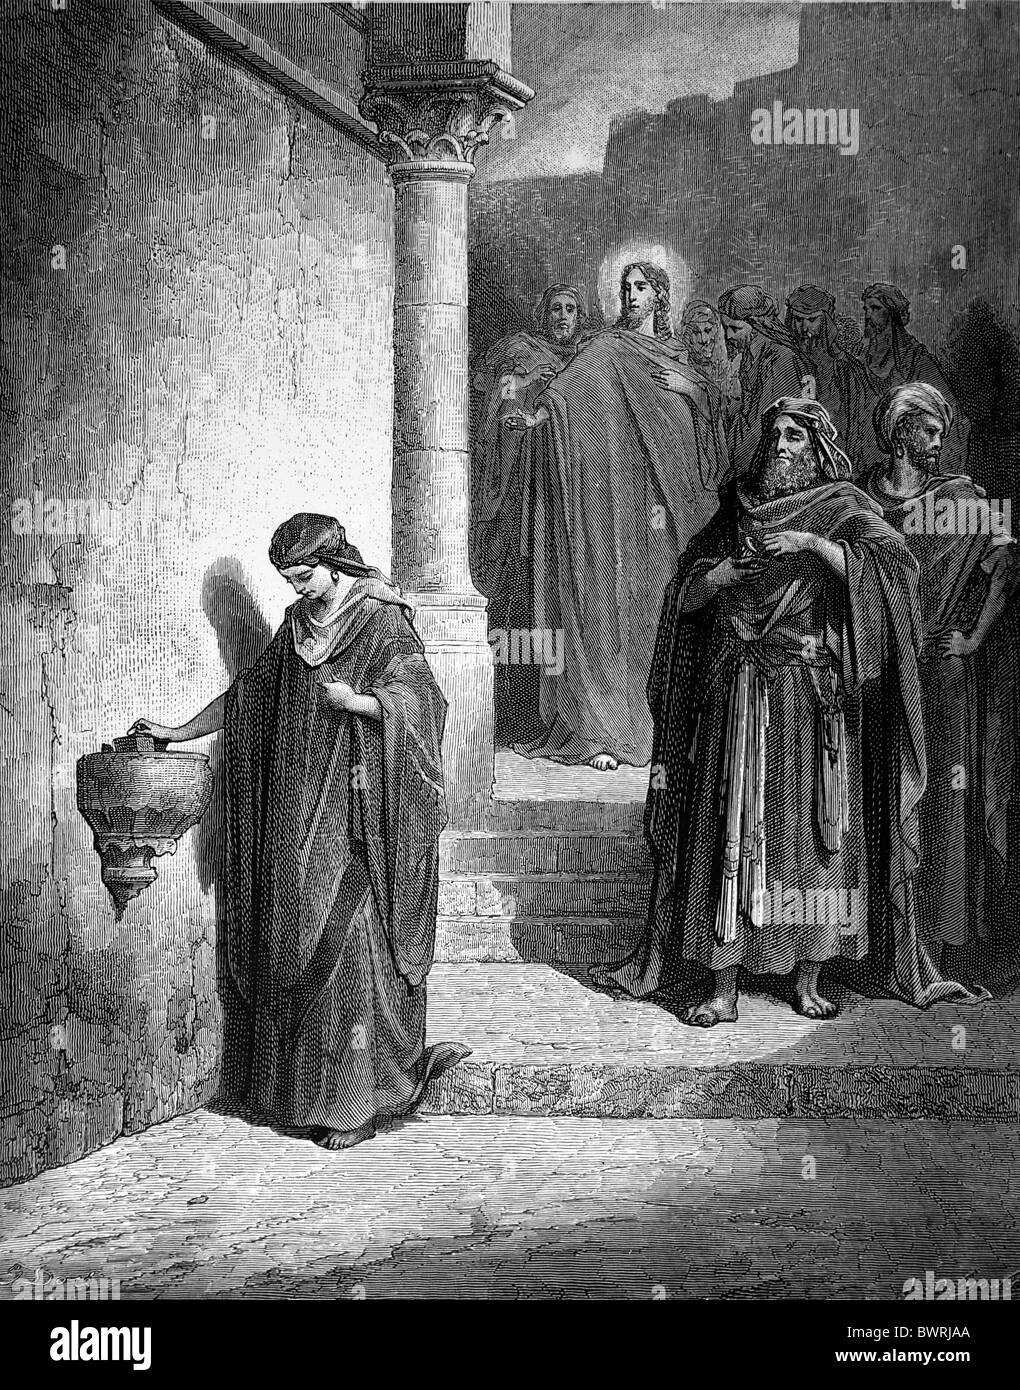 Gustave Doré; The Parable of the Widow's Mite; Black and White Engraving - Stock Image